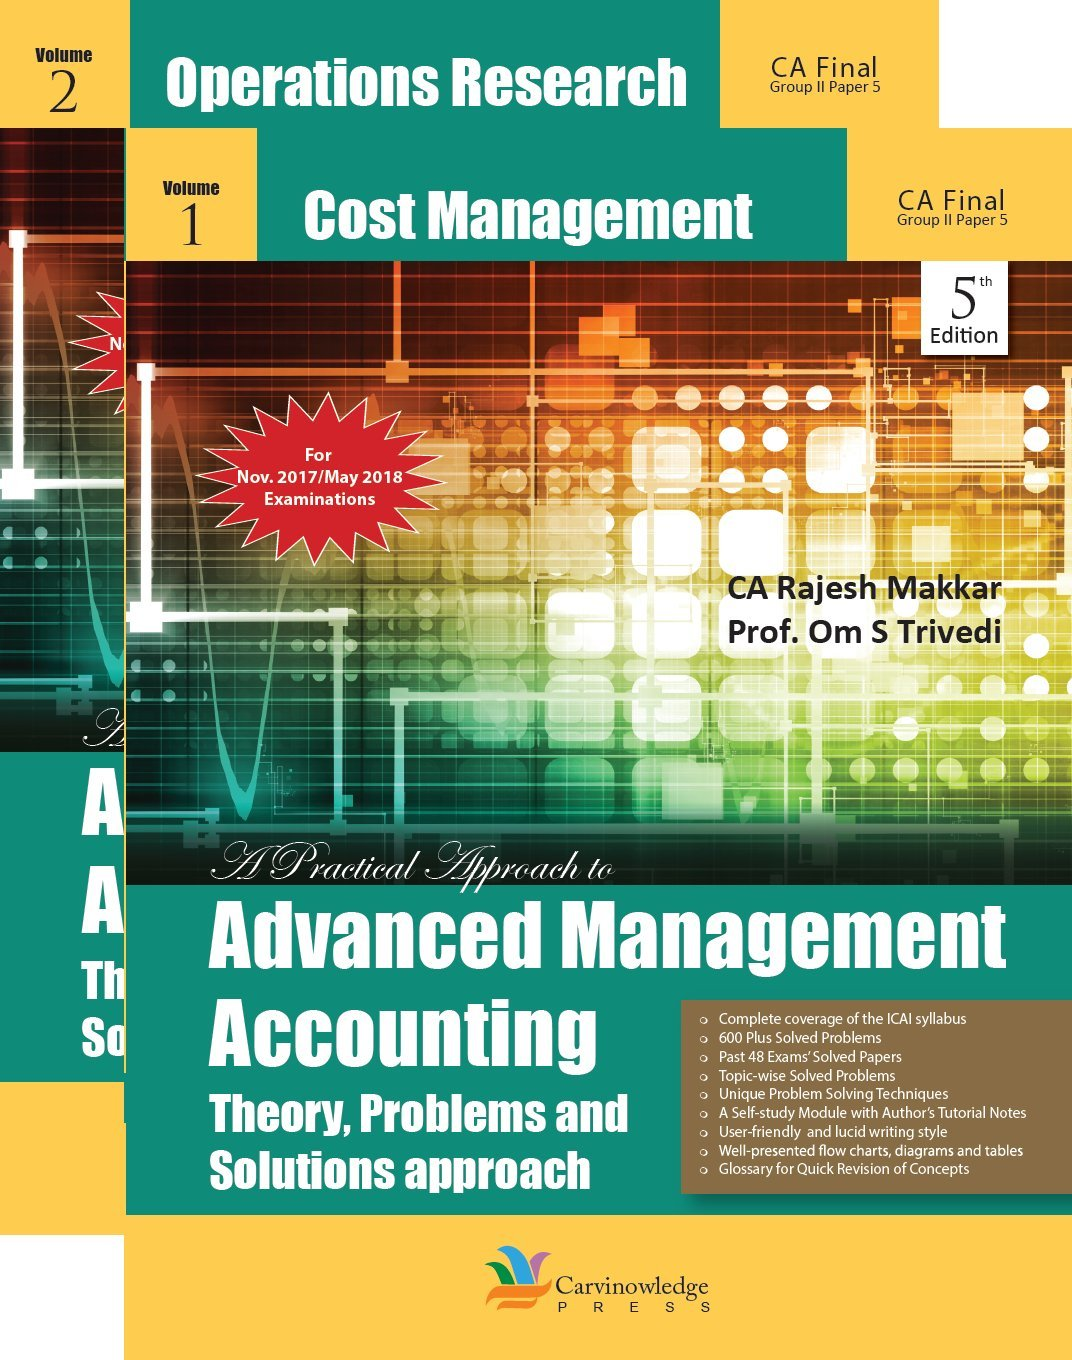 ADVANCED MANAGEMENT CONCEPTS PDF DOWNLOAD